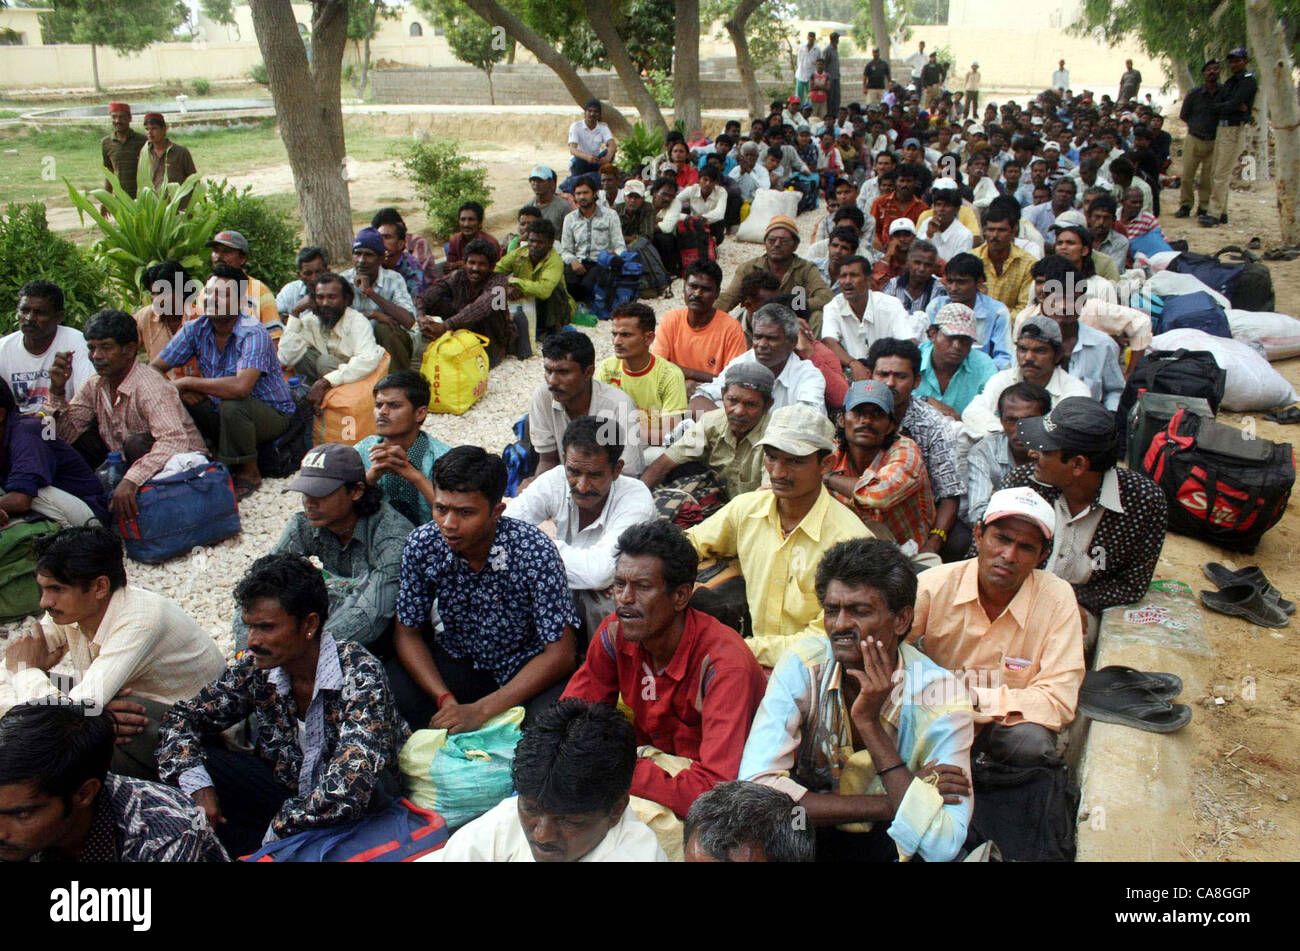 Freed Indian fishermen, who were imprisoned for violating  territorial waters, sit in queues before their release - Stock Image